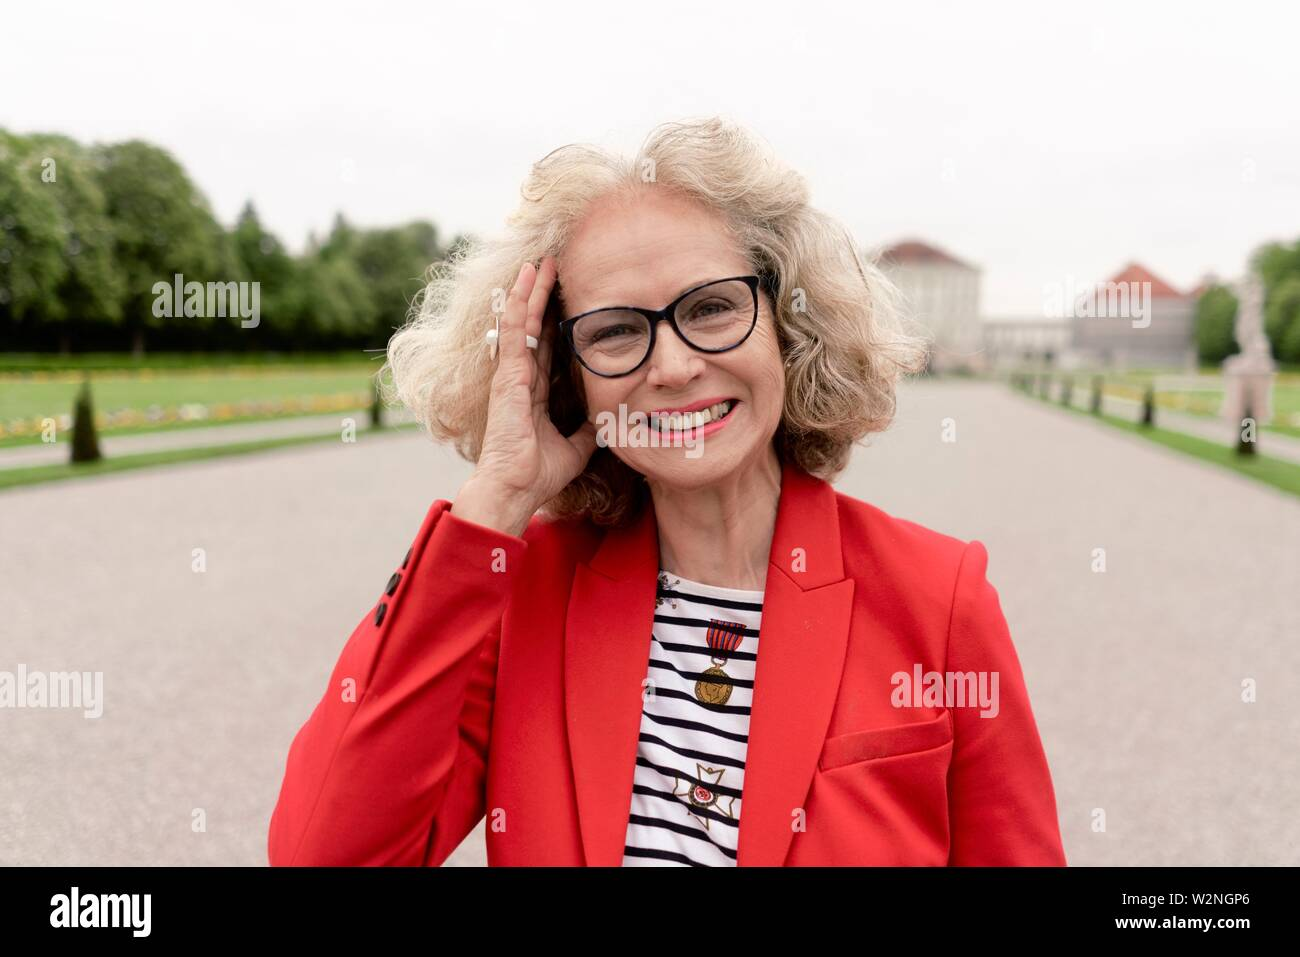 smiling senior woman (67 years old) with hand on head in park, in Nymphenburg, Munich, Germany. - Stock Image